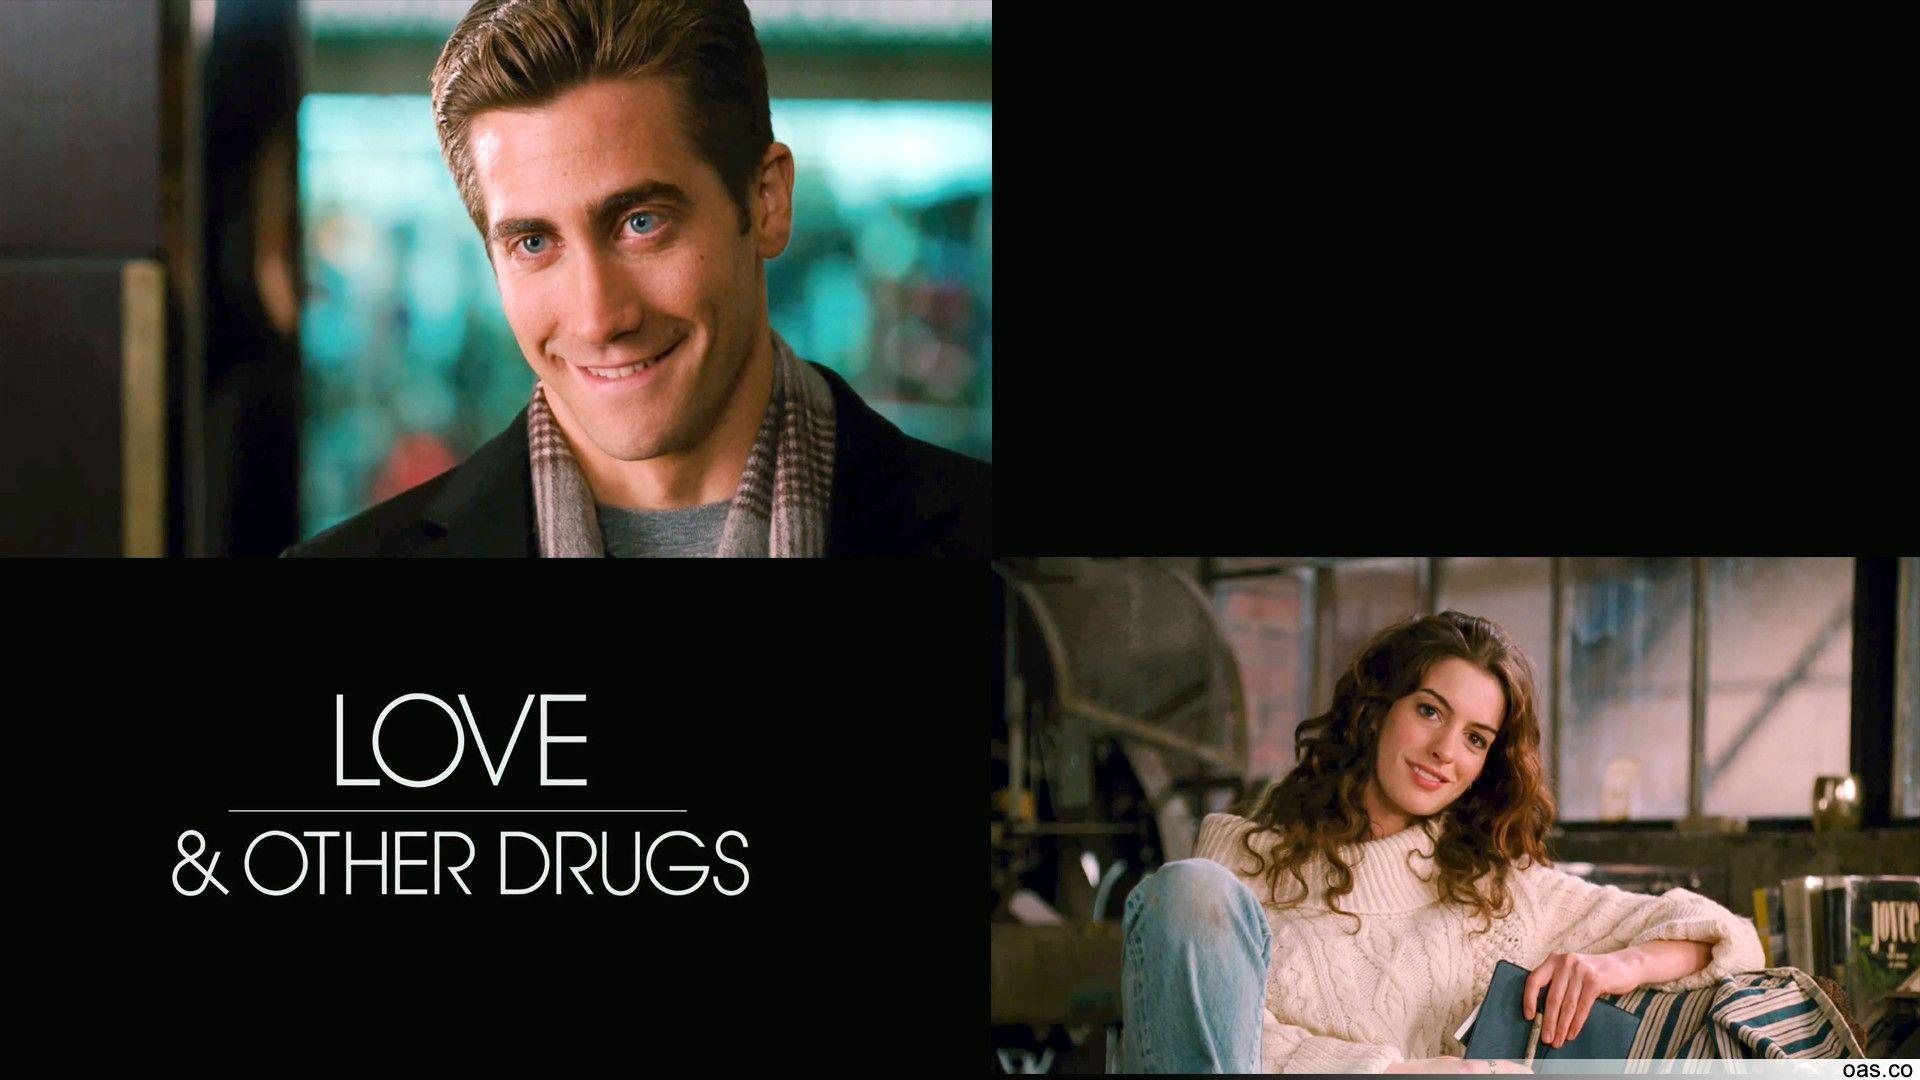 Love And Other Drugs Wallpapers - Wallpaper Cave